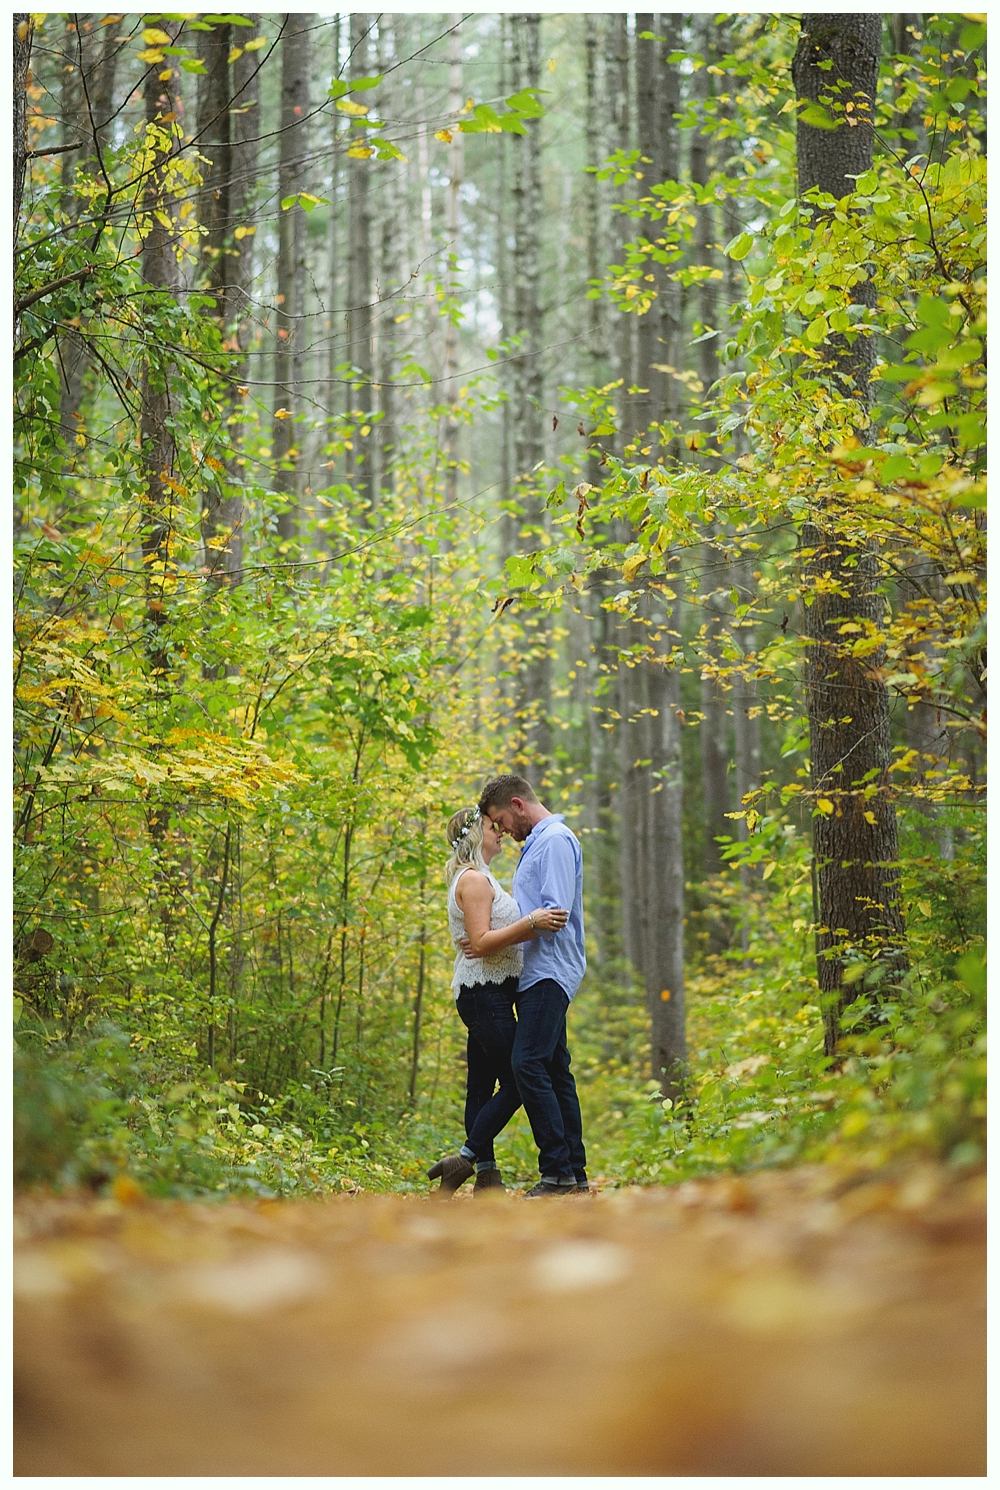 CT_Engagement_Photography_Outdoor_Forest_15